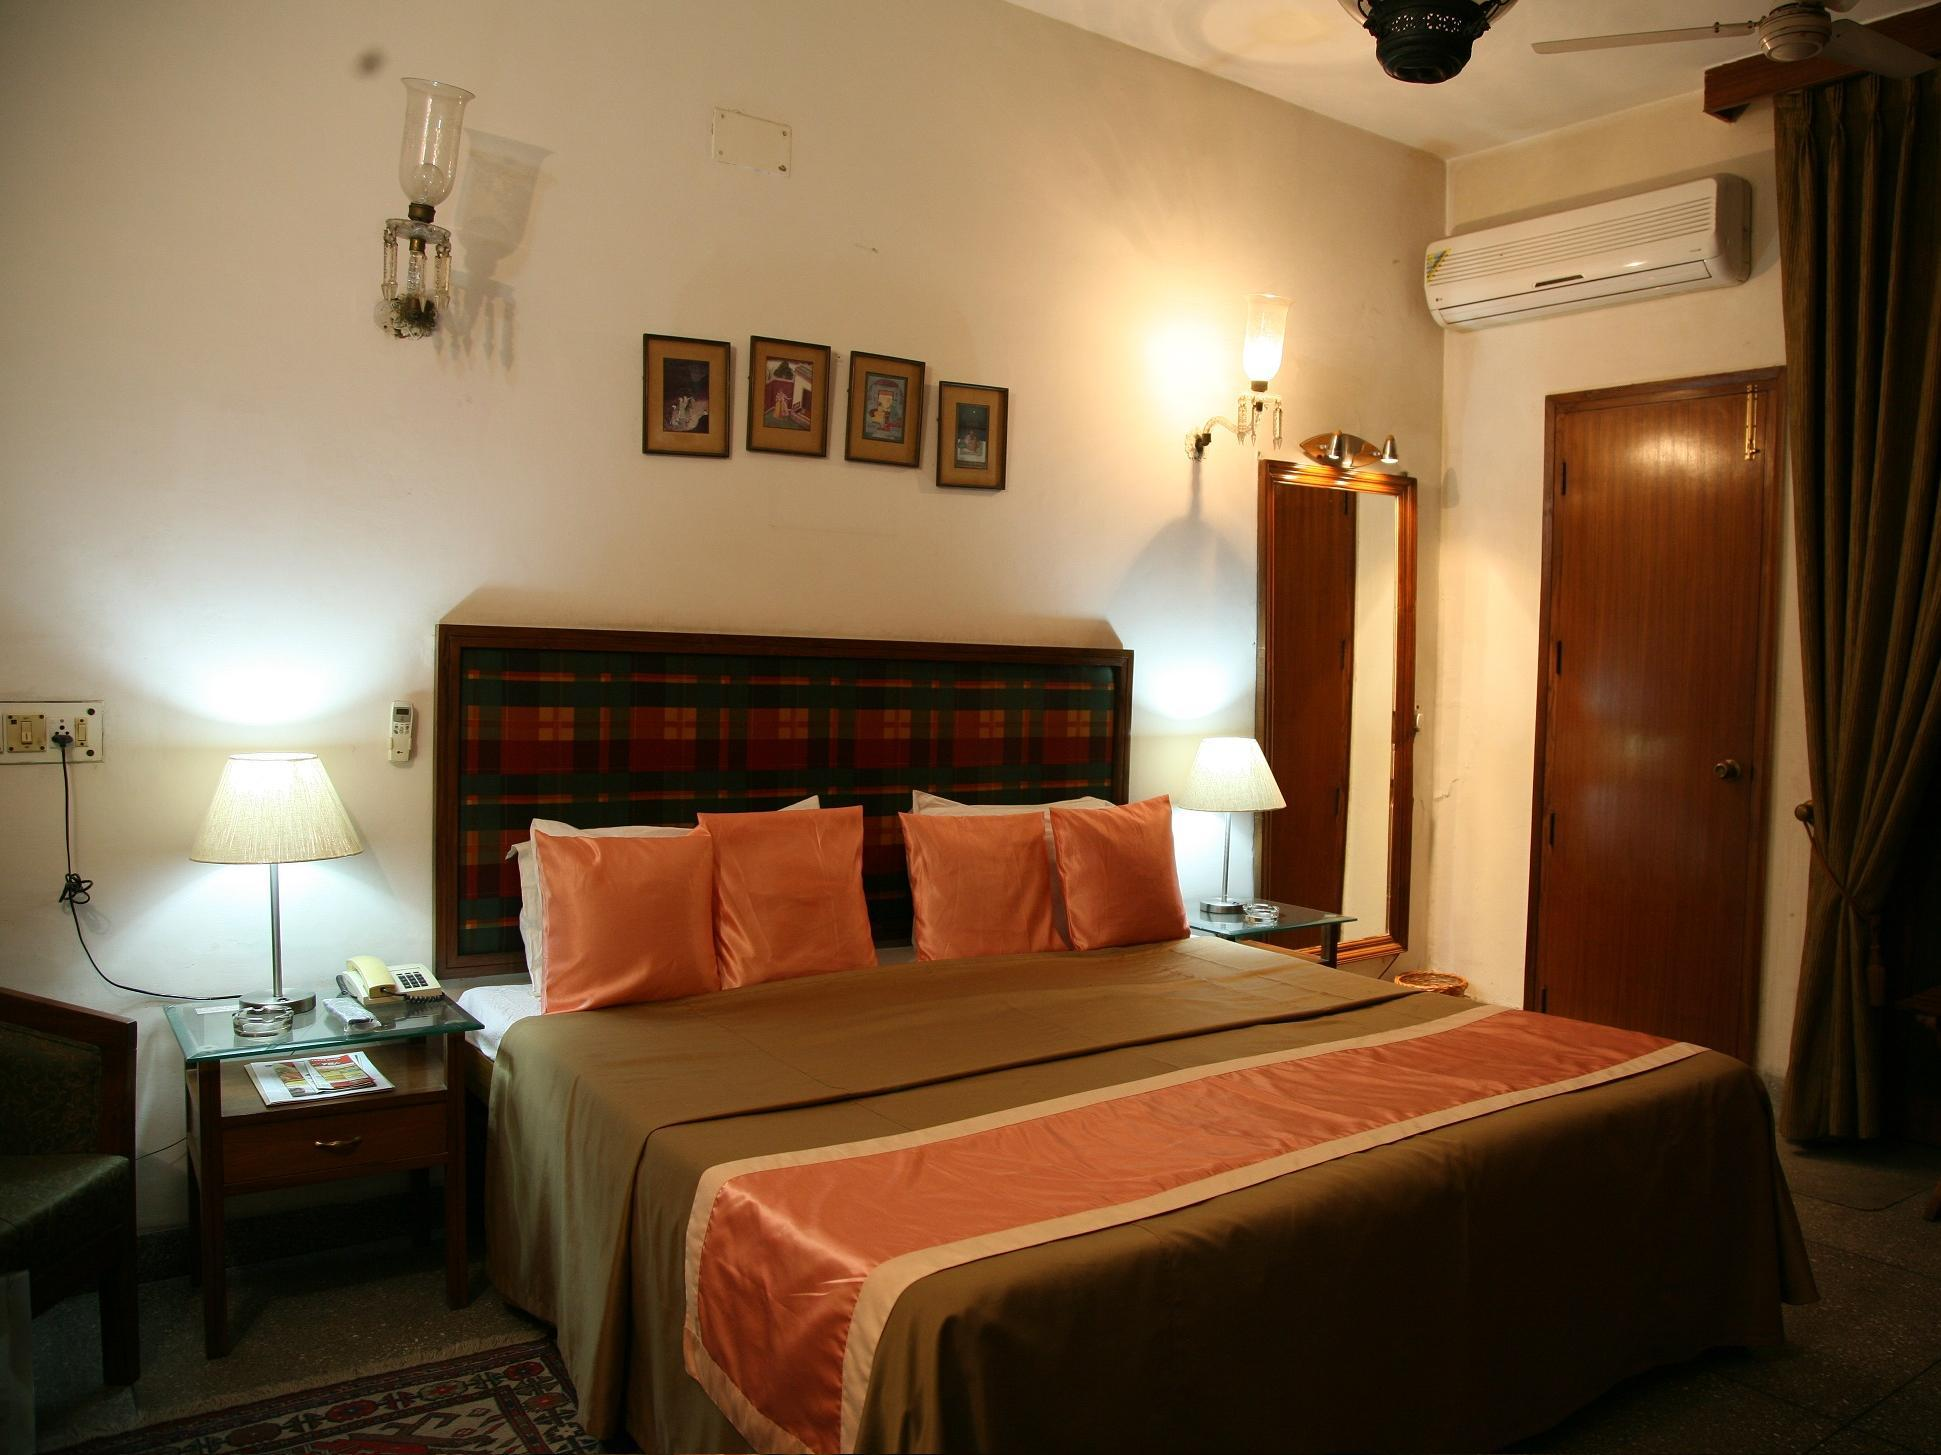 The Royal Residency Hotel New Delhi and NCR - Premium Suite Room